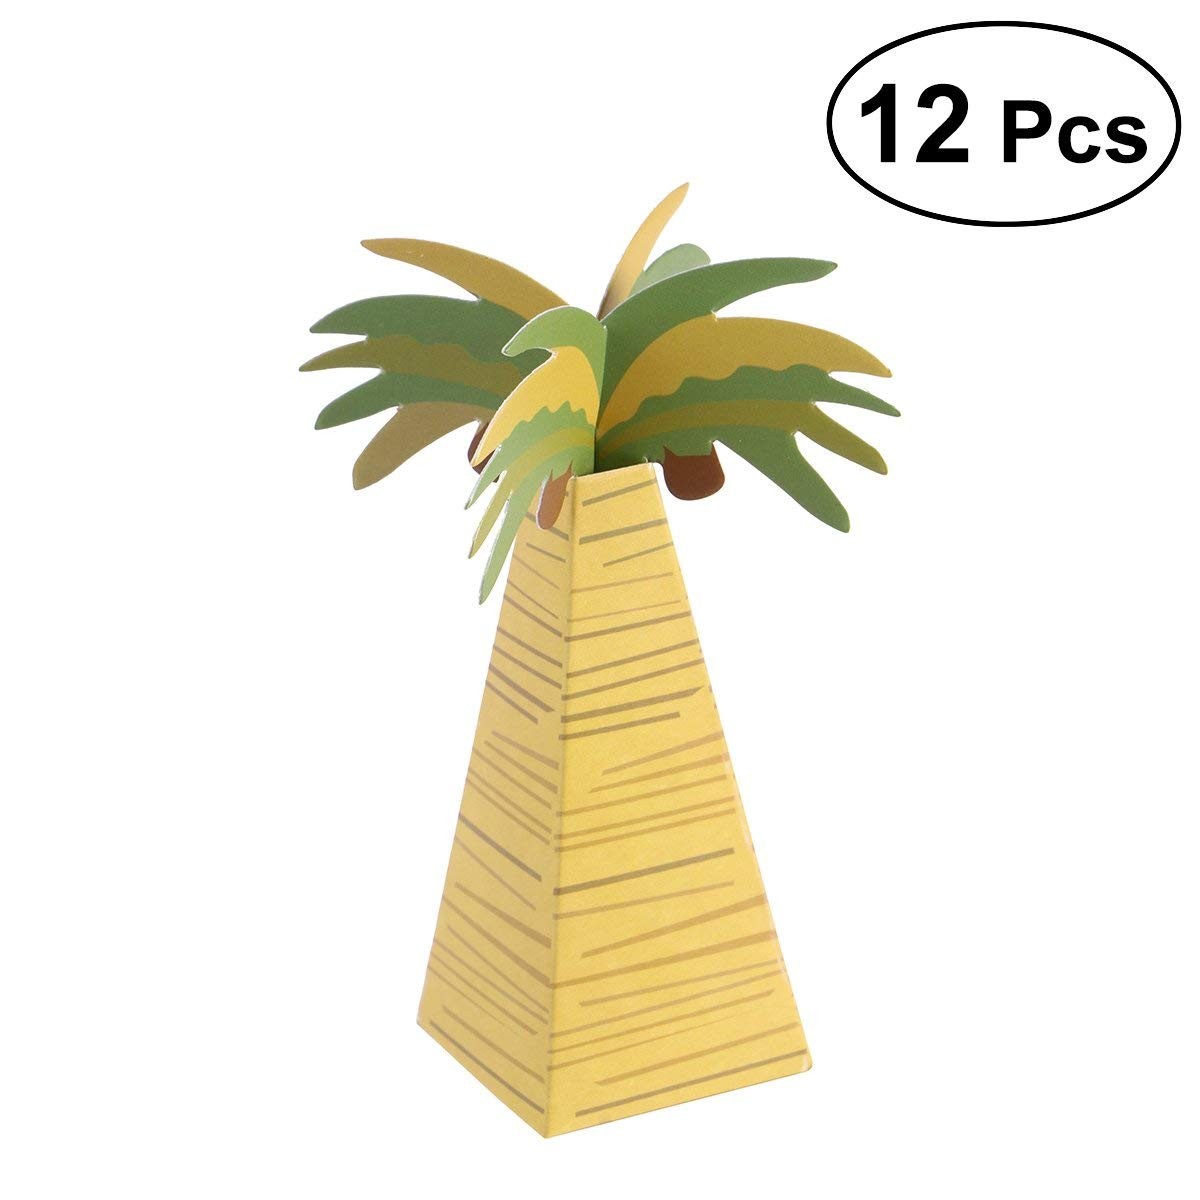 12 Pcs Candy Boxes Chocolate Gifts Box Tinksky Hawaiian Style Coconut Tree Paper Box for Wedding Party Favors